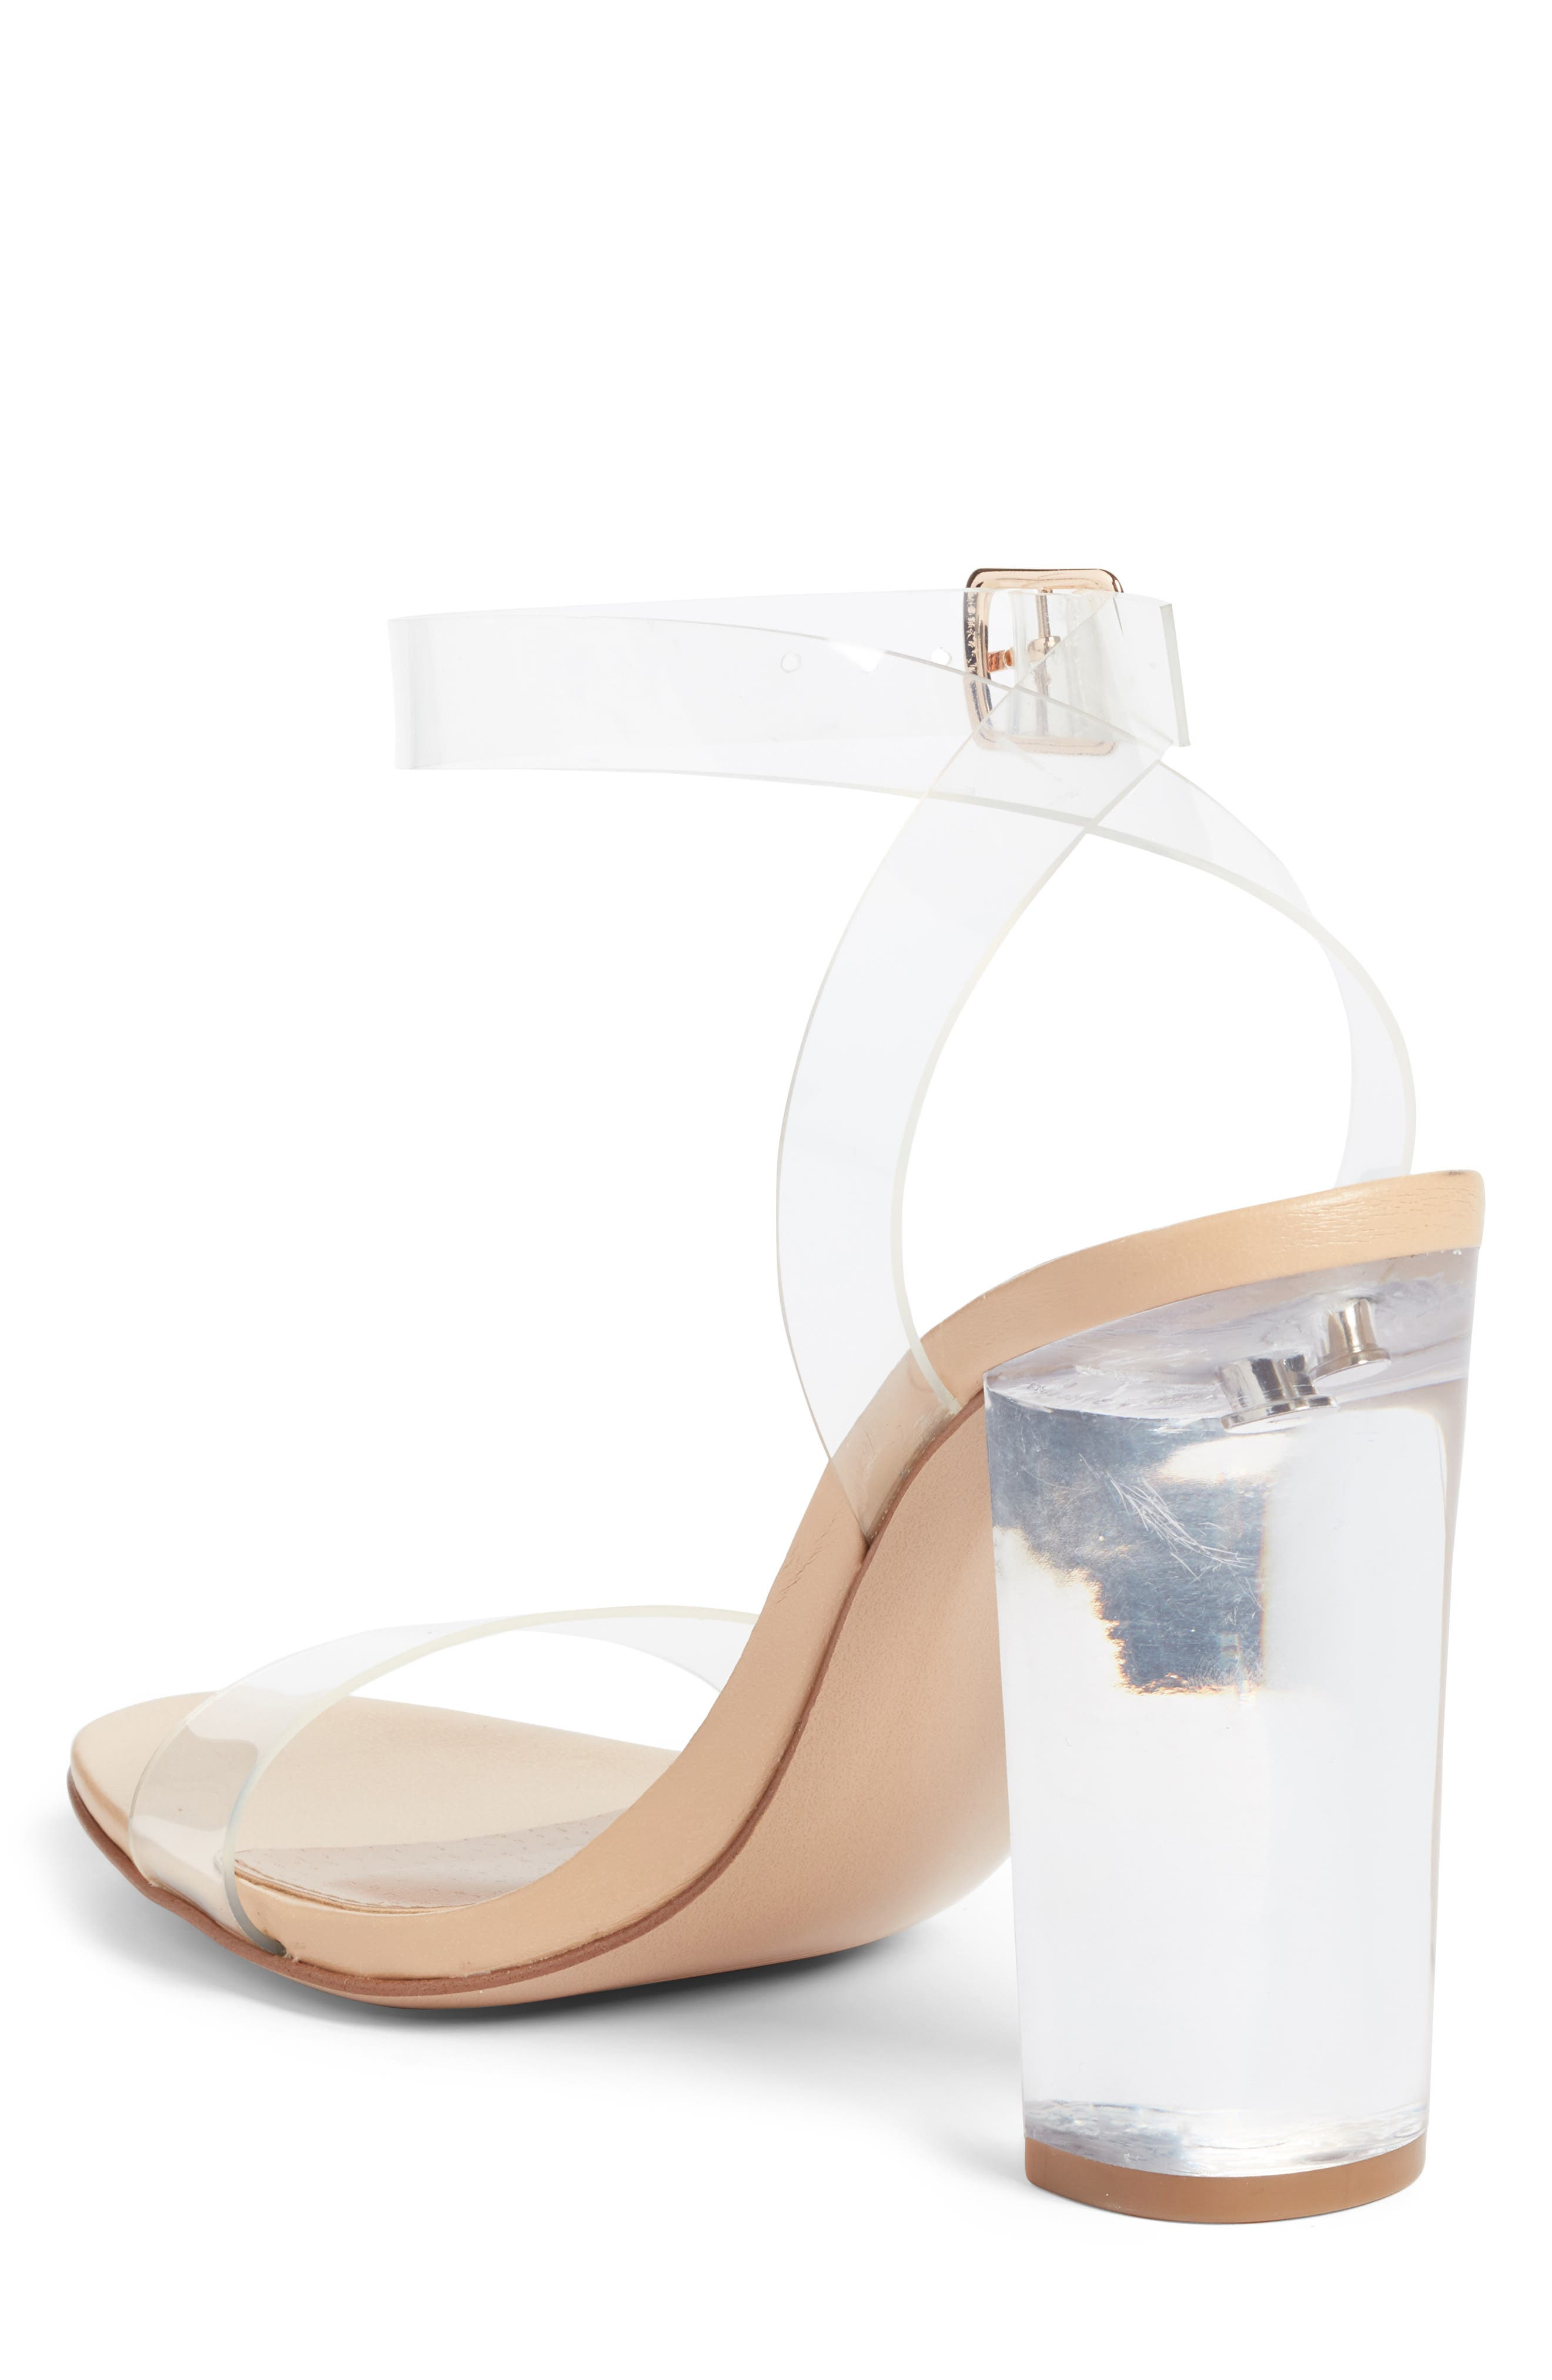 STEVE MADDEN, Camille Clear Sandal, Alternate thumbnail 2, color, CLEAR